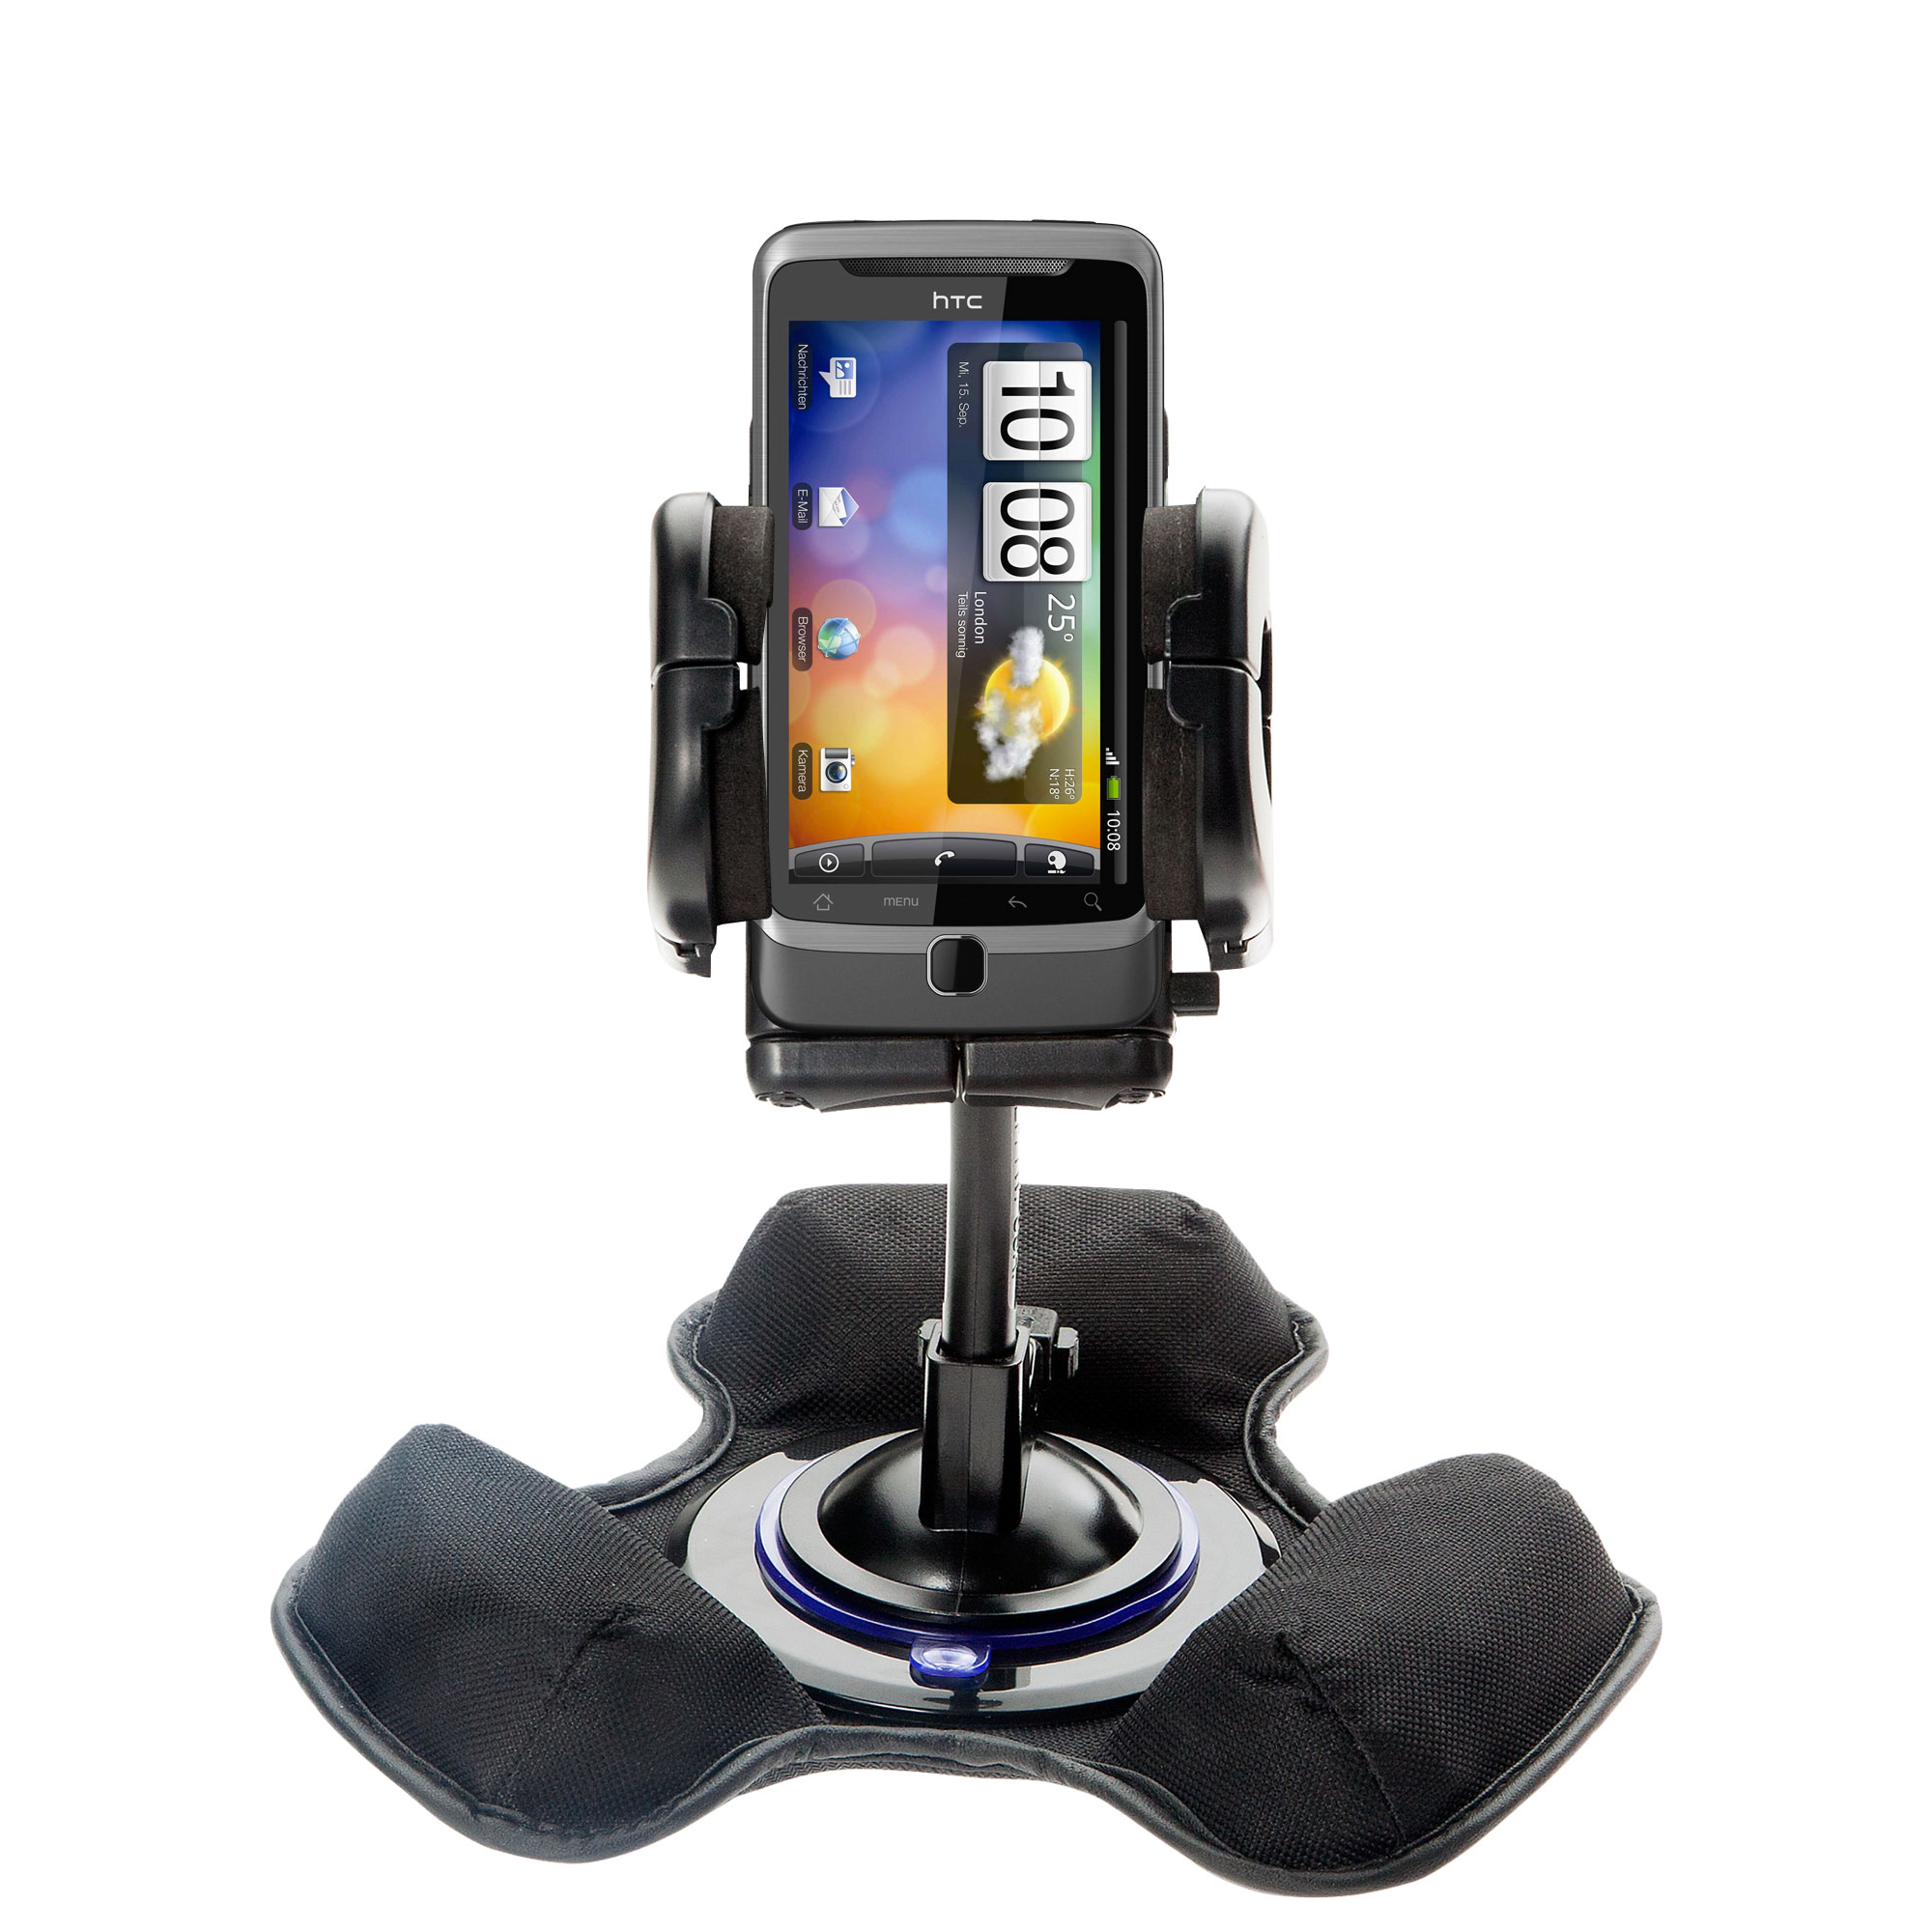 Dash and Windshield Holder compatible with the HTC Desire Z